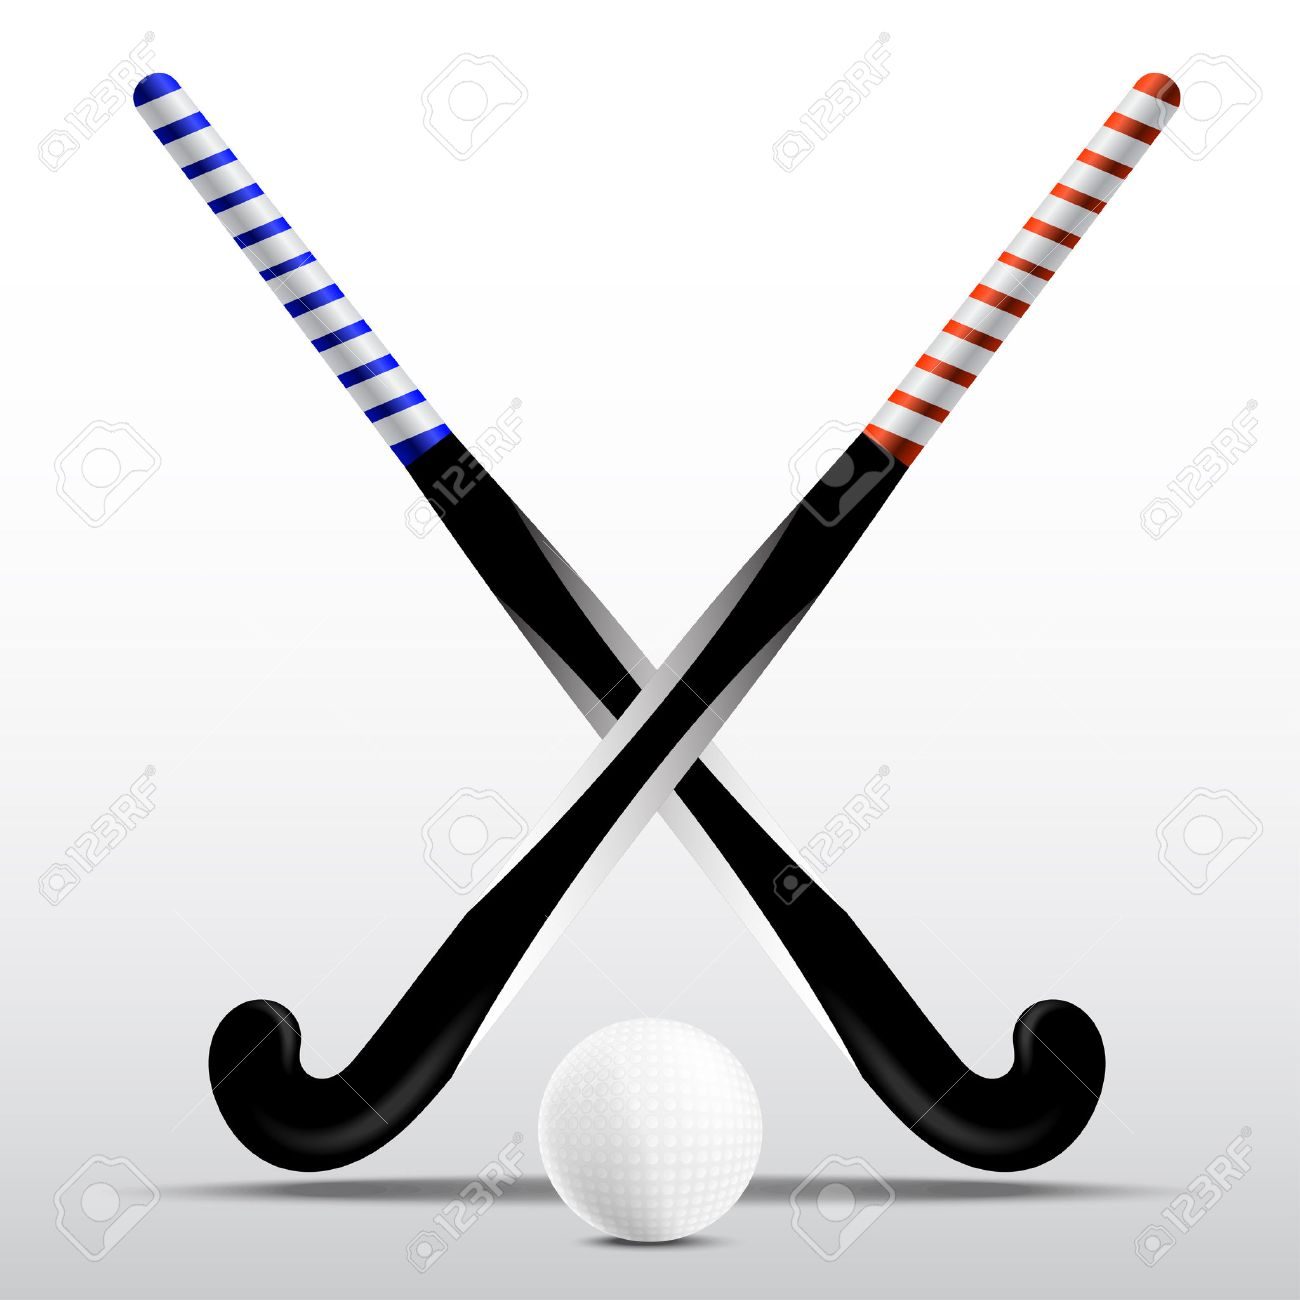 2782 field hockey stock vector illustration and royalty free two sticks for field hockey and ball on a white background biocorpaavc Image collections